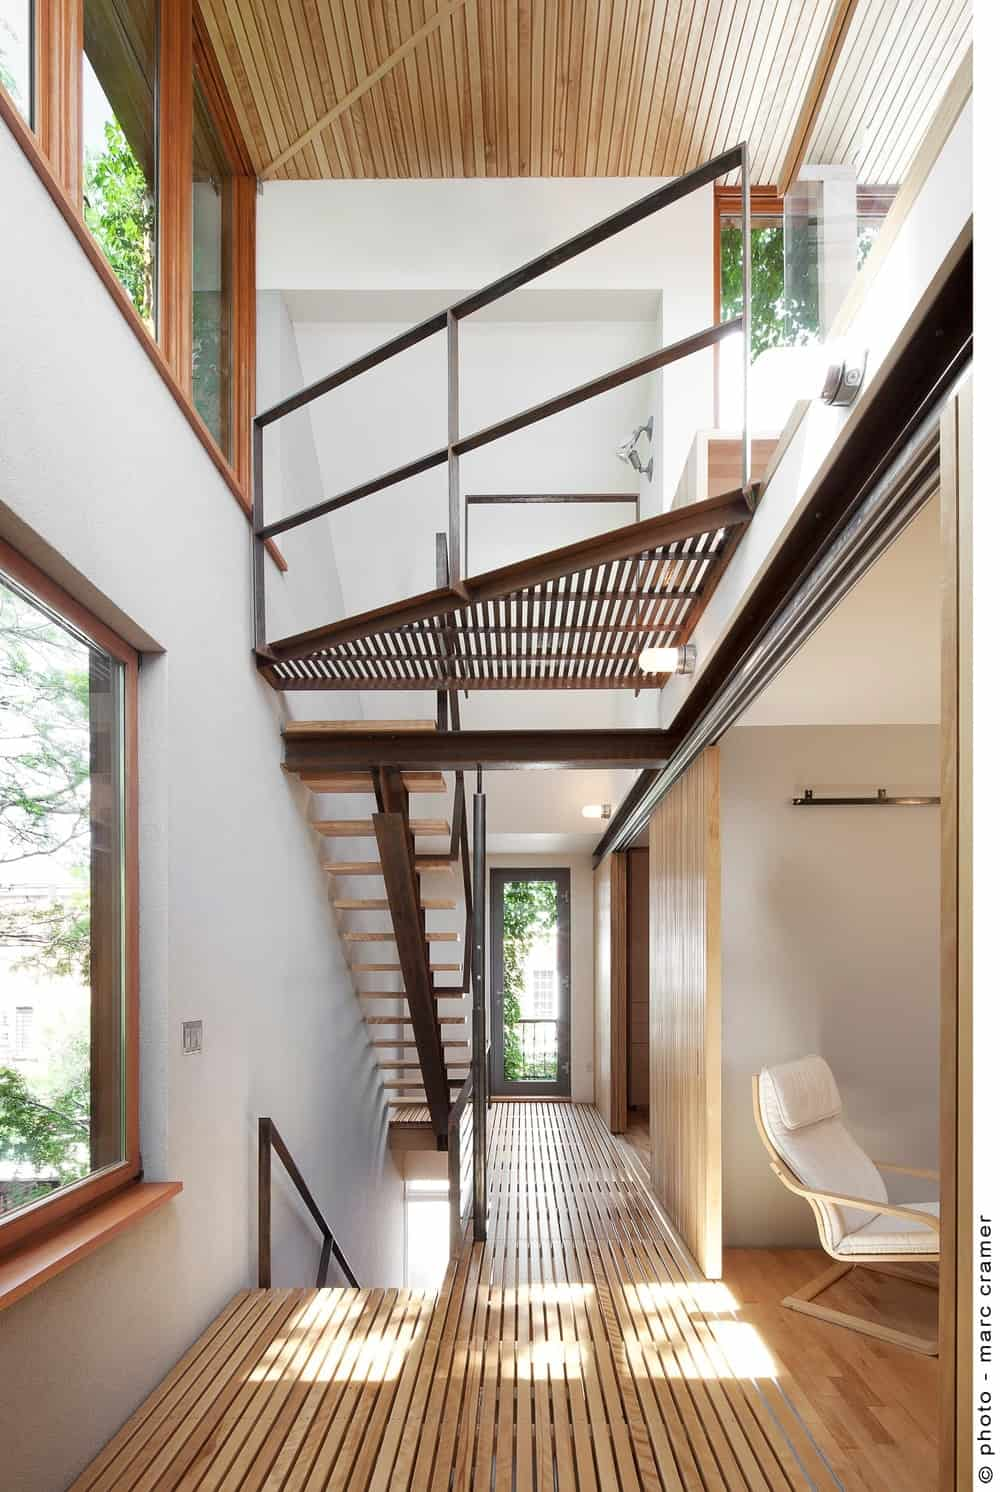 Another view of the hallway featuring hardwood flooring and white walls along with glass windows. Photo credit: Marc Cramer